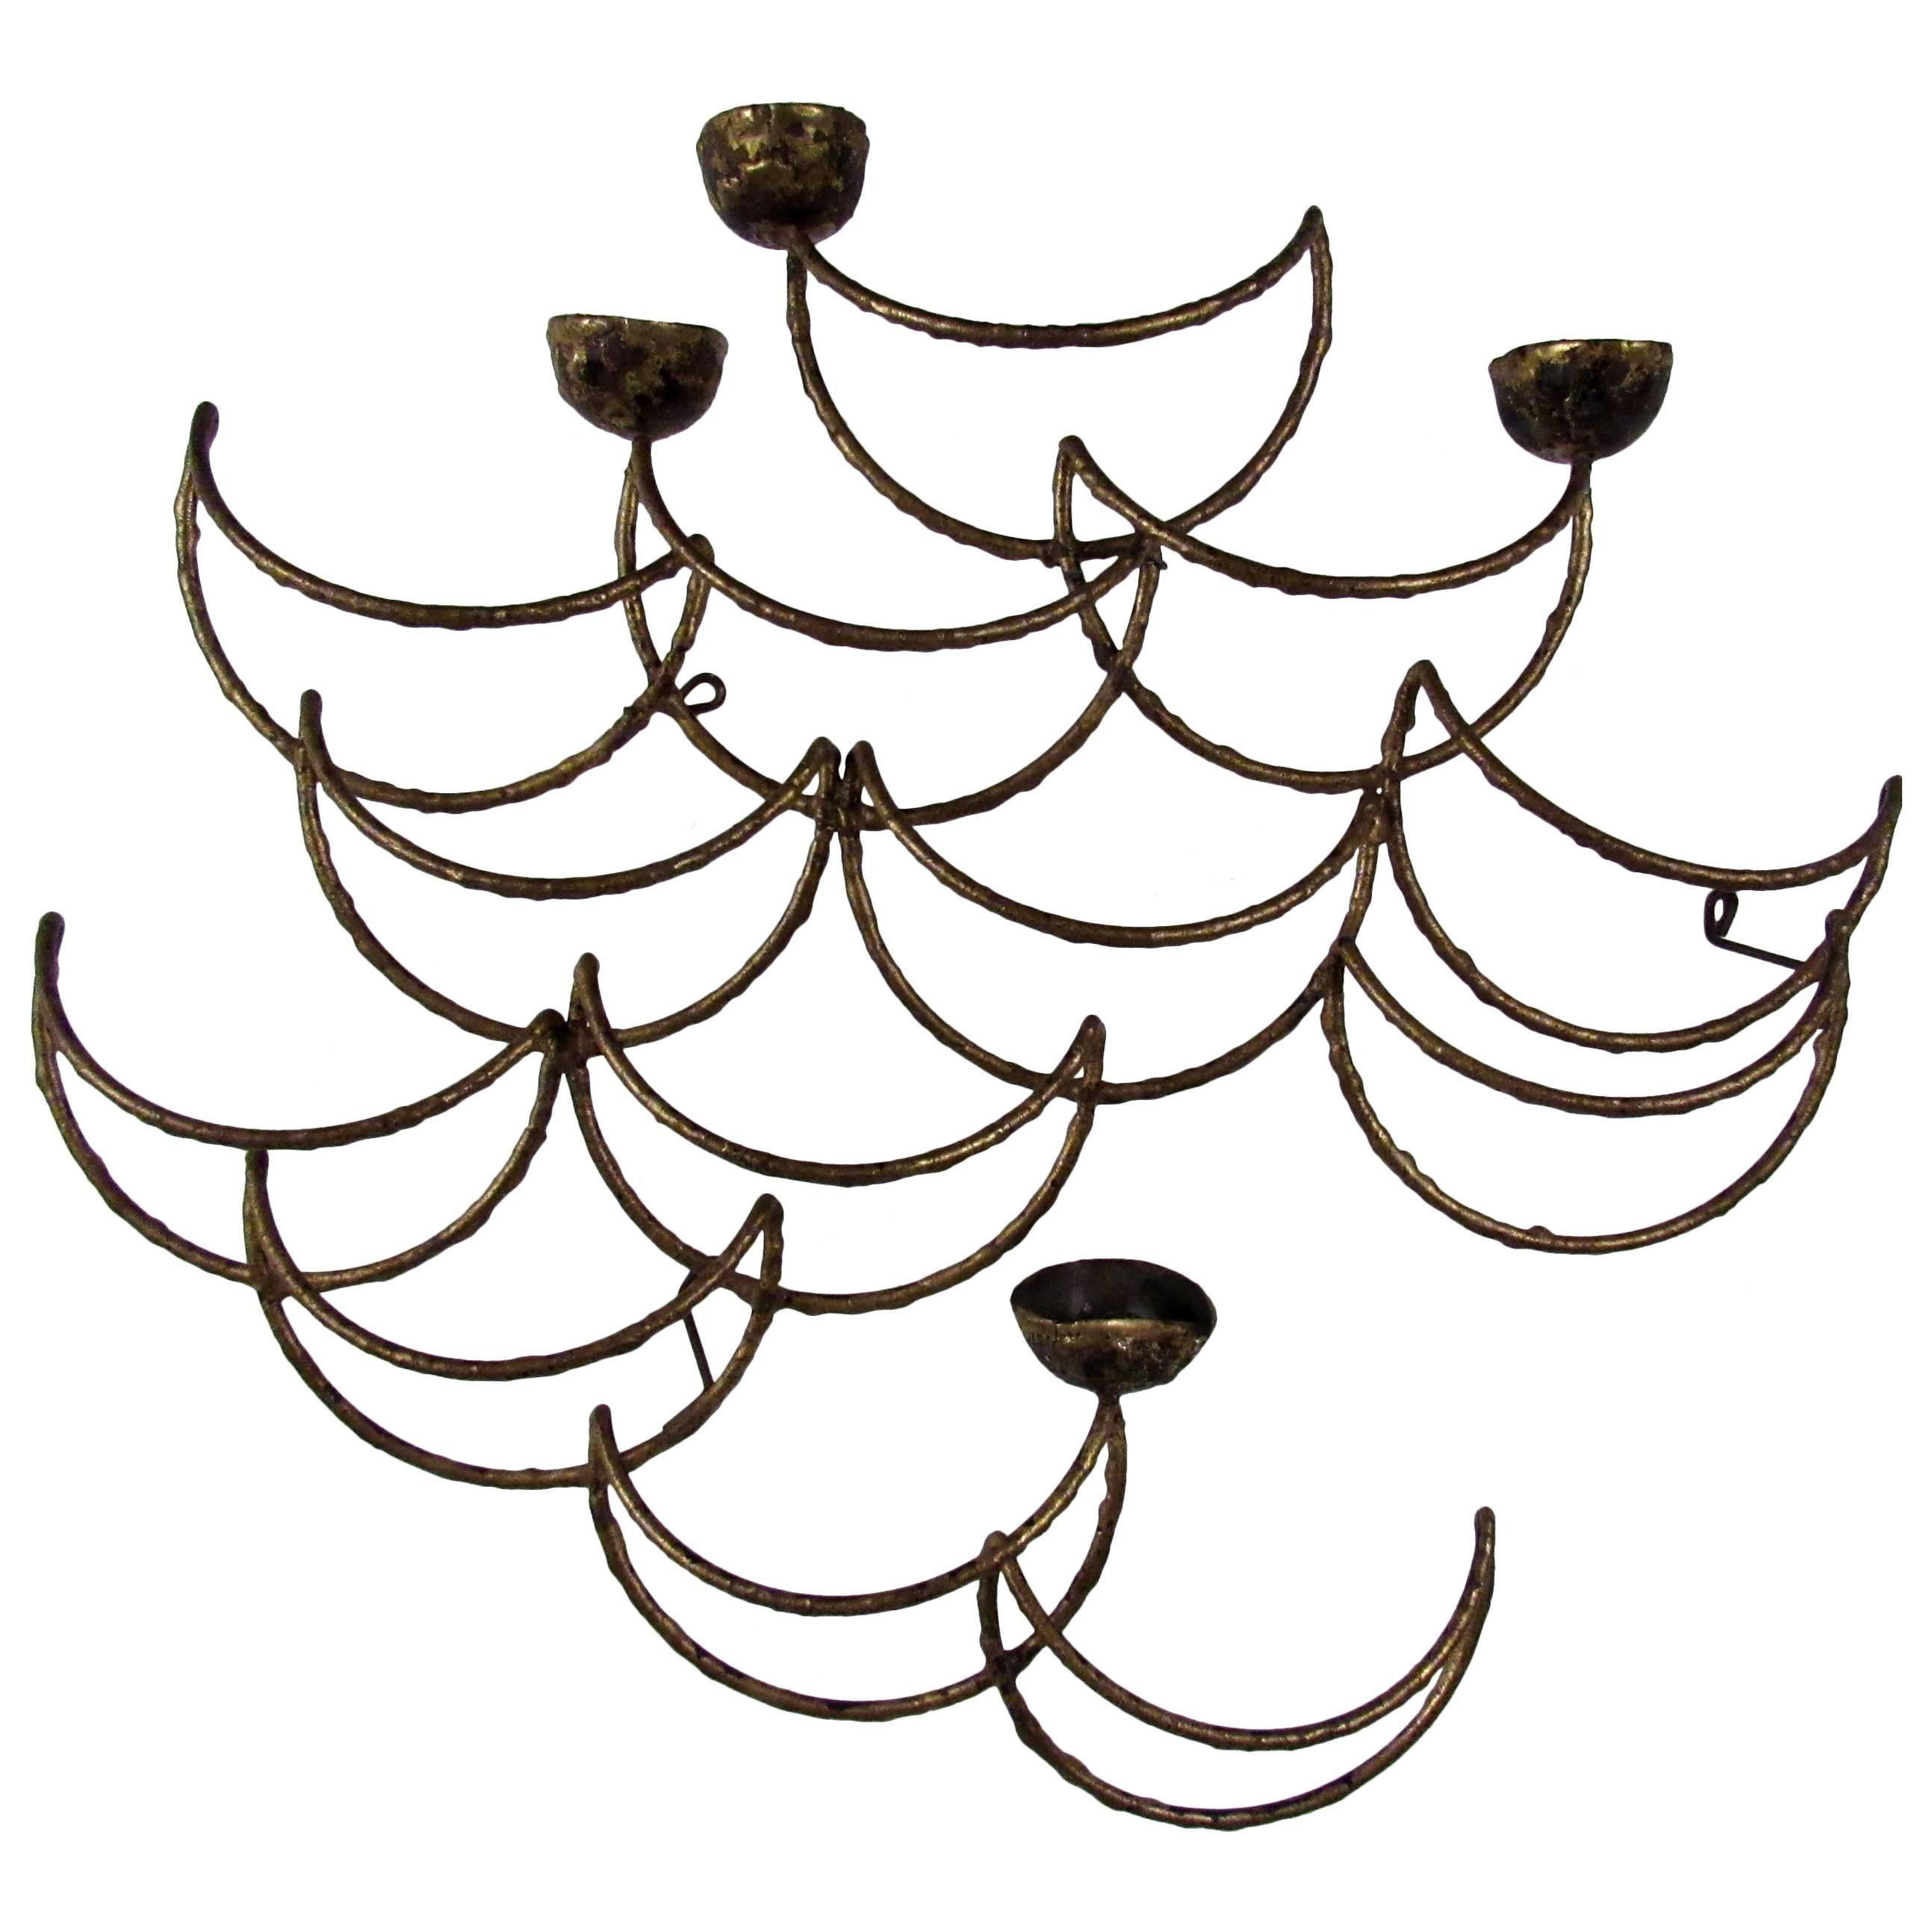 Midcentury Sculptural Candle Wall Sconce by C-Jere